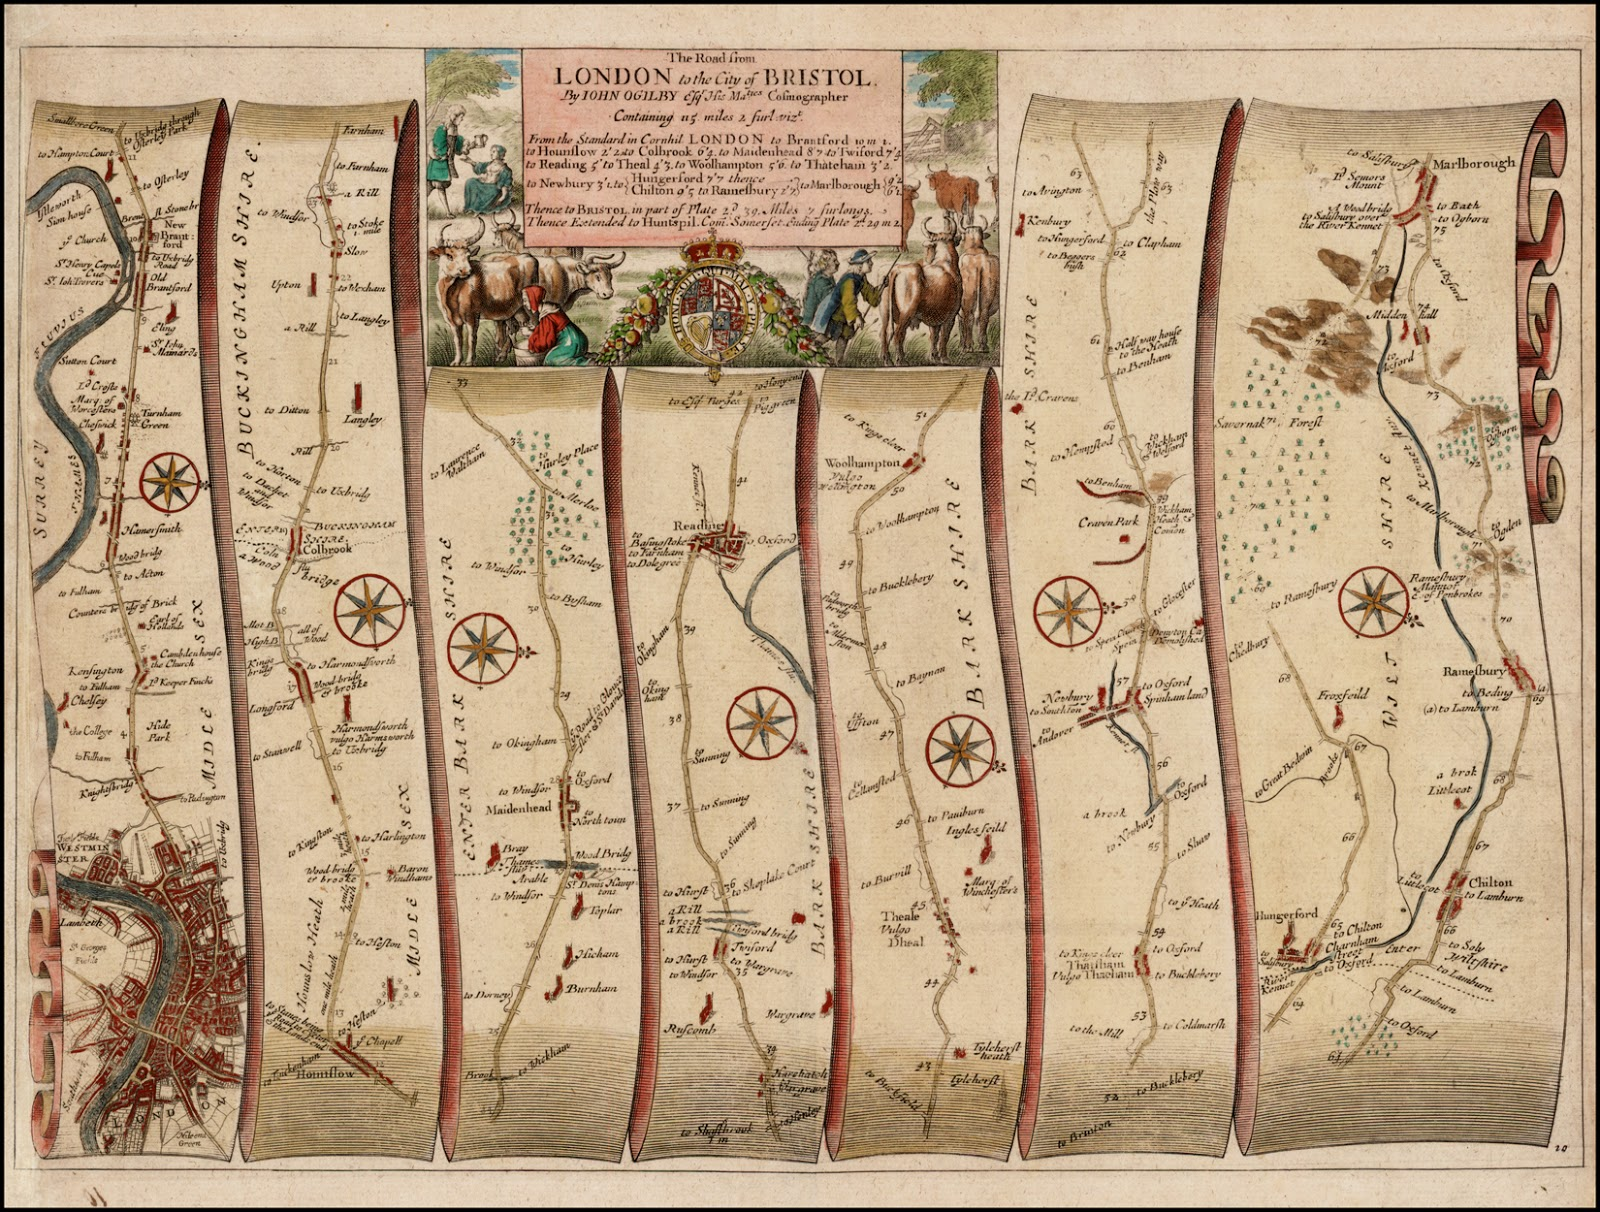 Antique Prints Blog Itinerary Maps - London map 1600